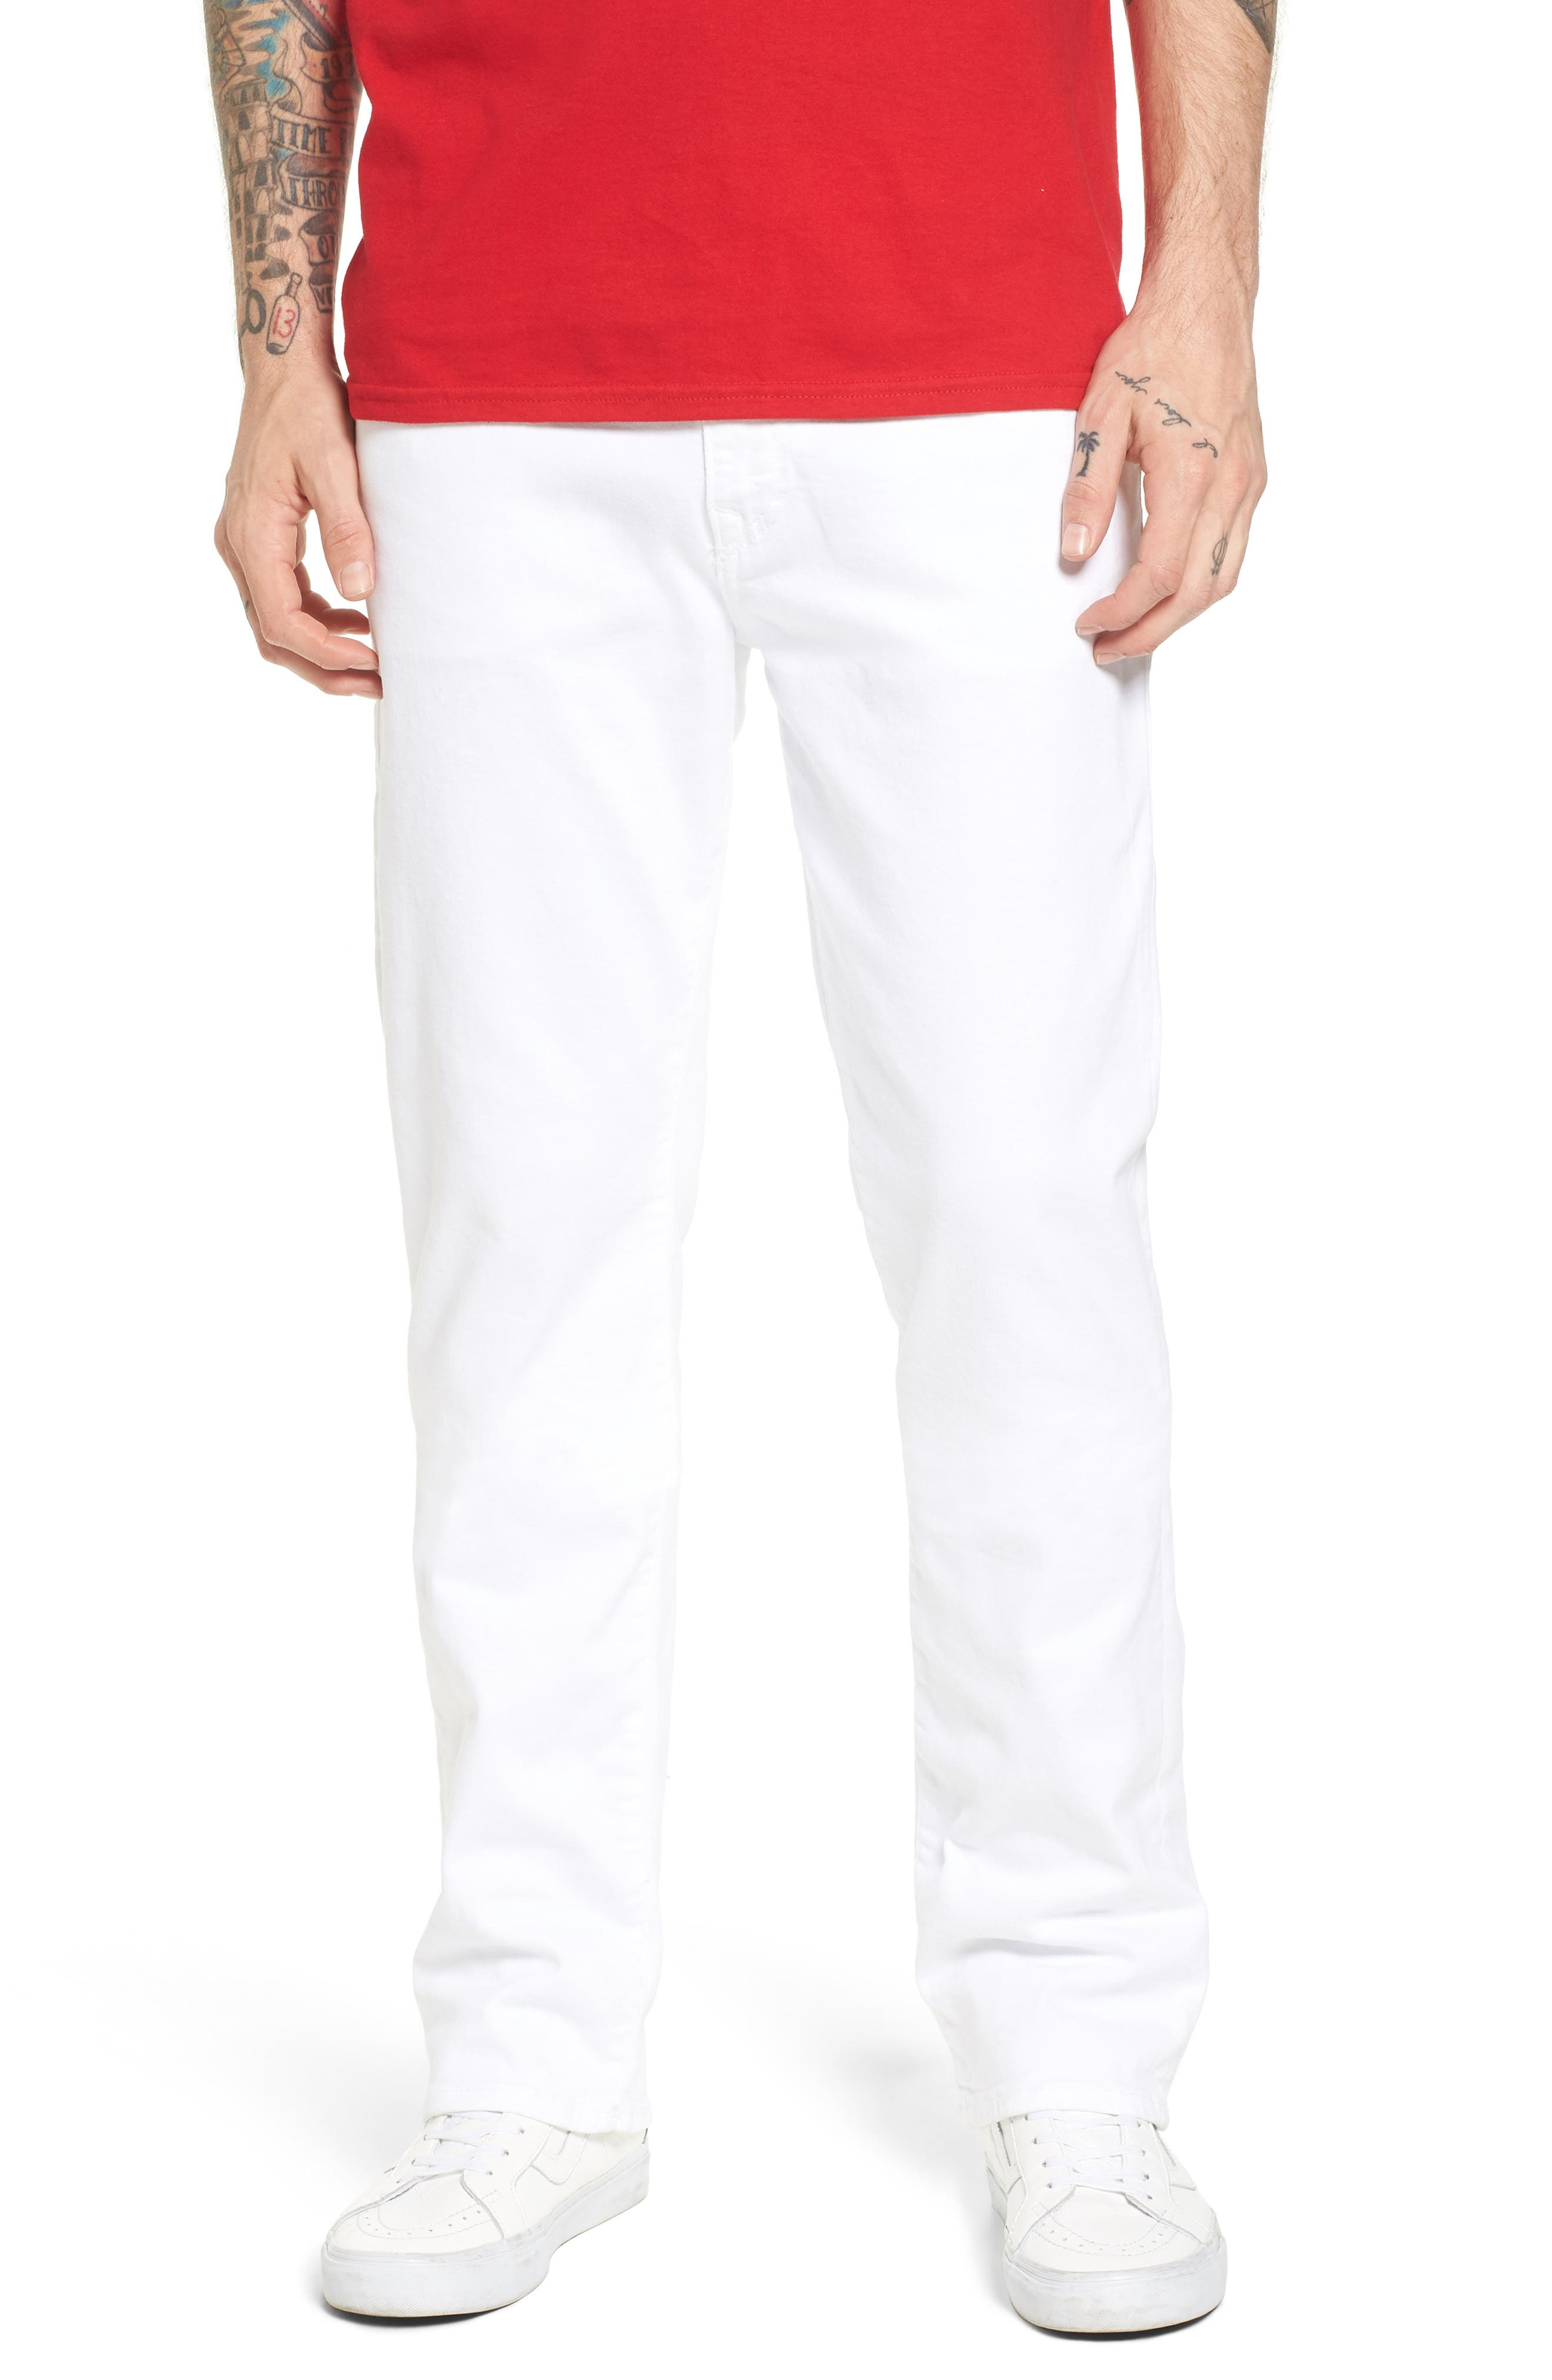 Alternate Image 1 Selected - True Religion Brand Jeans Ricky Relaxed Fit Jeans (Optic Stone)